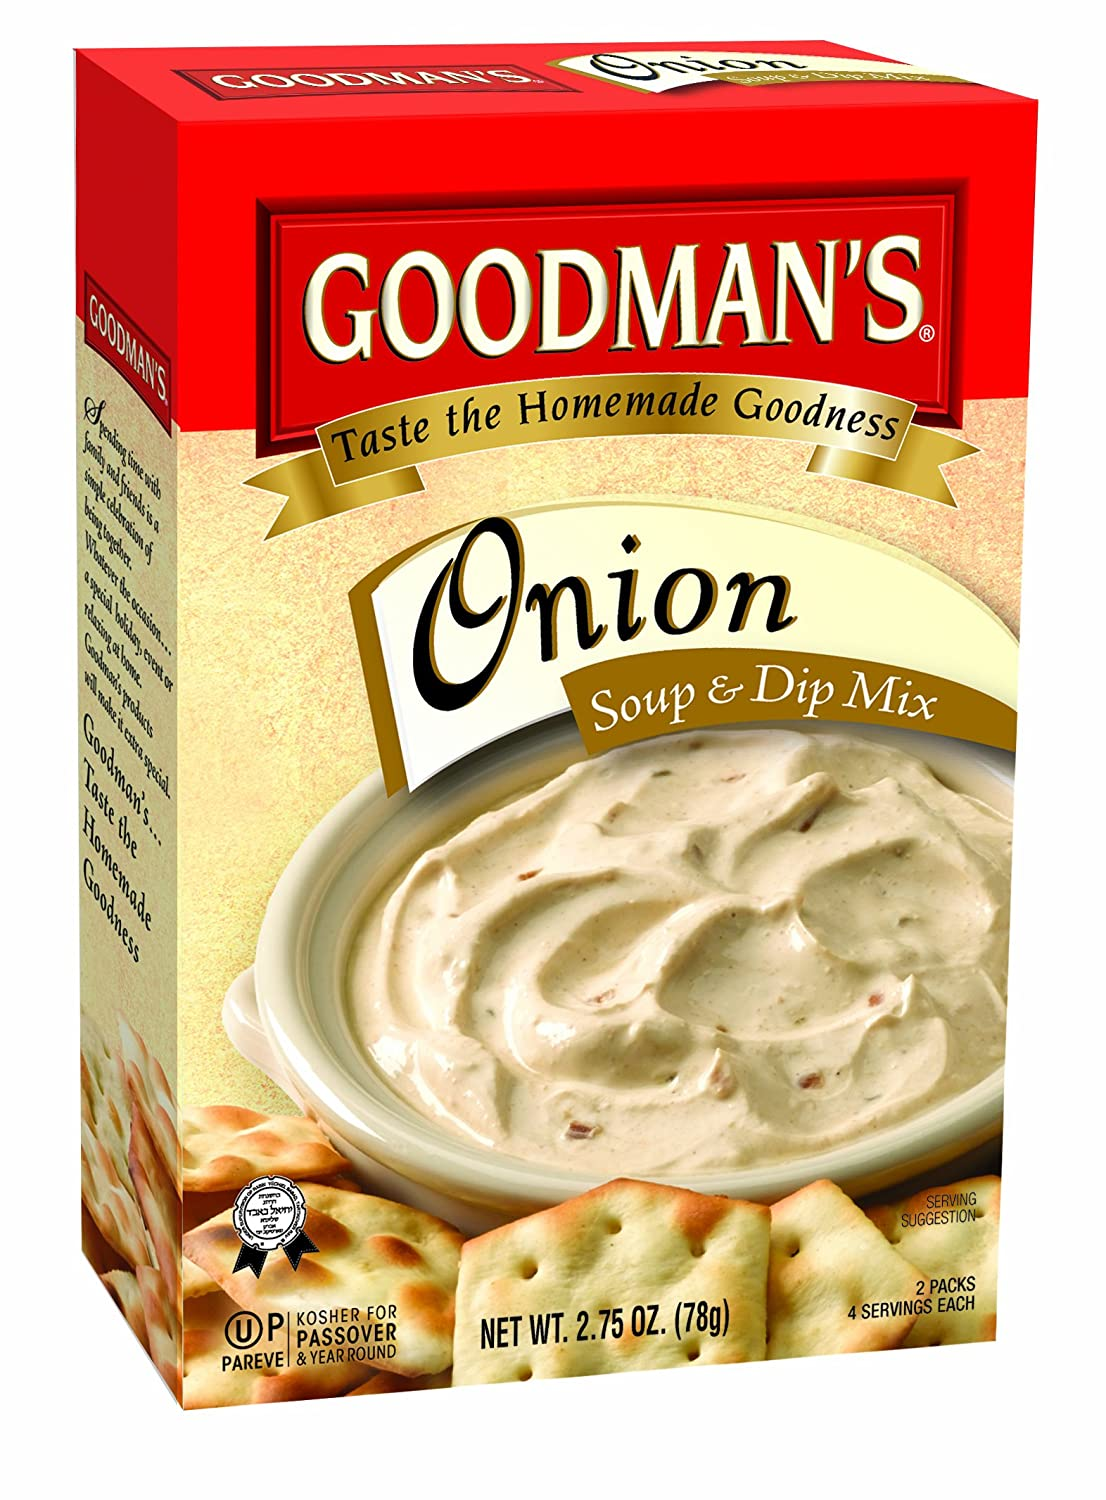 Goodman's Onion Soup Dip Over item handling Mix mart 24 Pack of 2.75-ounce